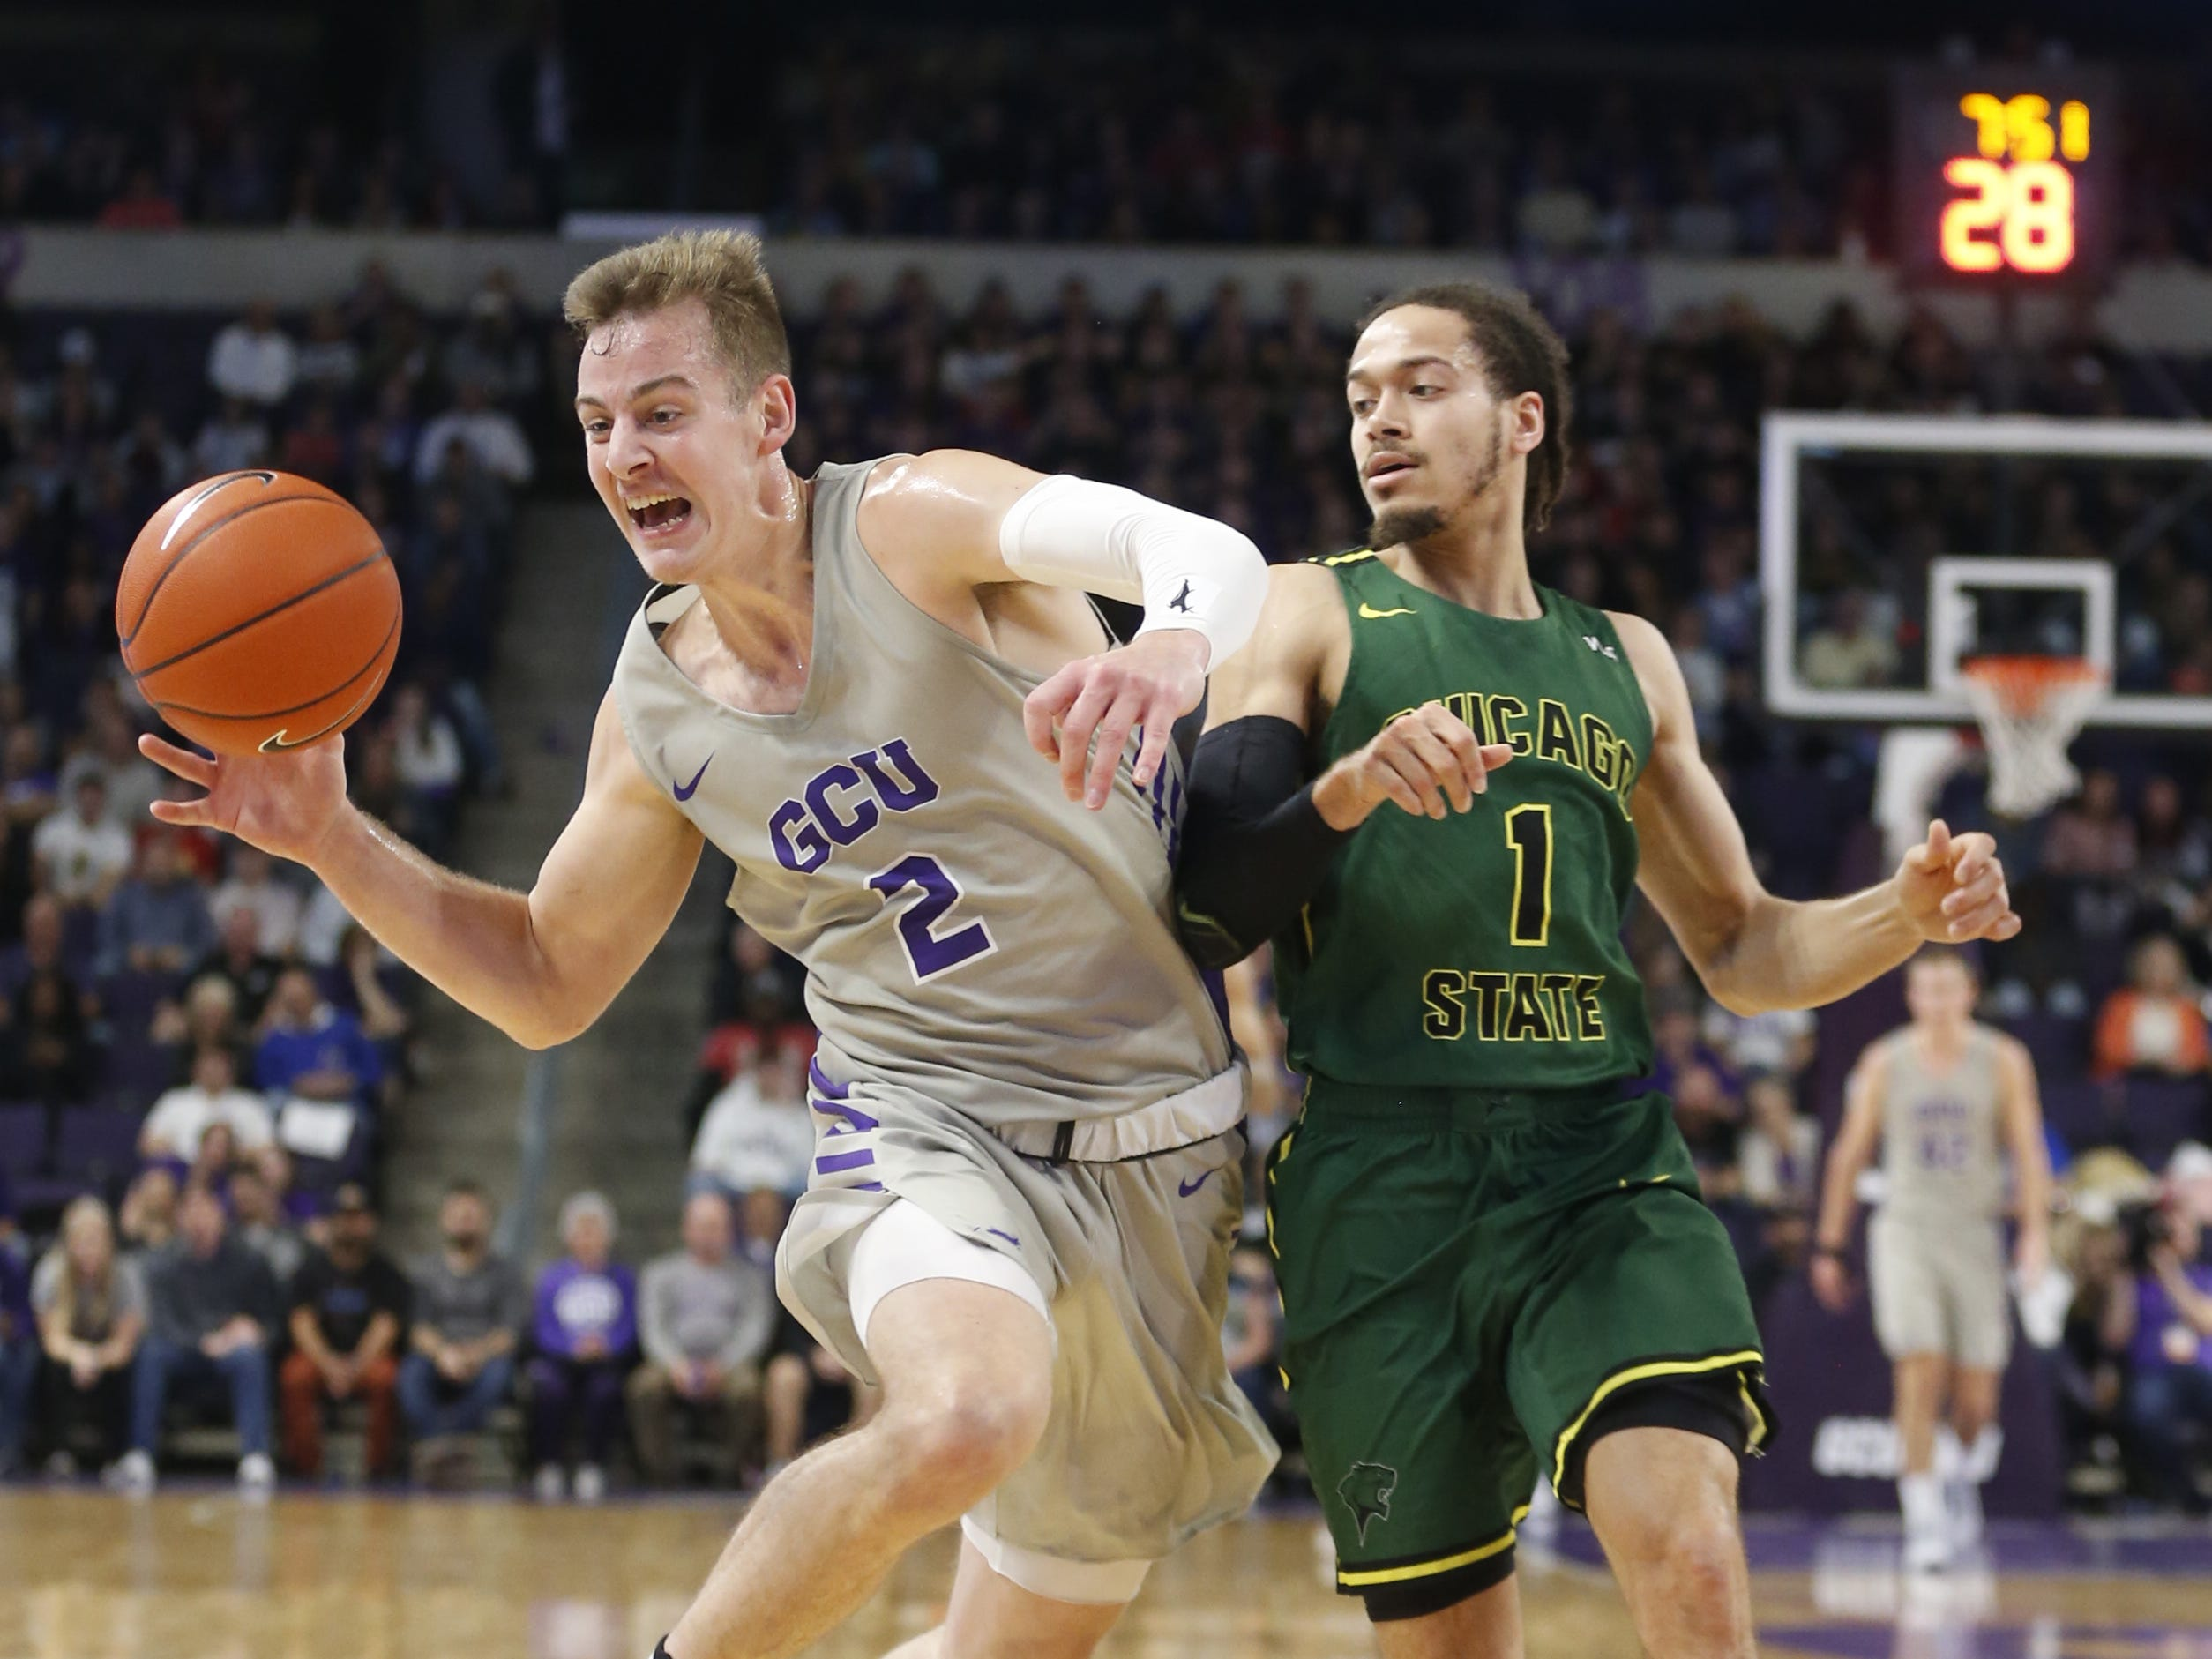 Chicago State University's Rob Shaw (1) forces GCU's Trey Dreschel (2) to lose control of a ball during the first half at Grand Canyon University Arena in Phoenix, Ariz. on January 17, 2019.